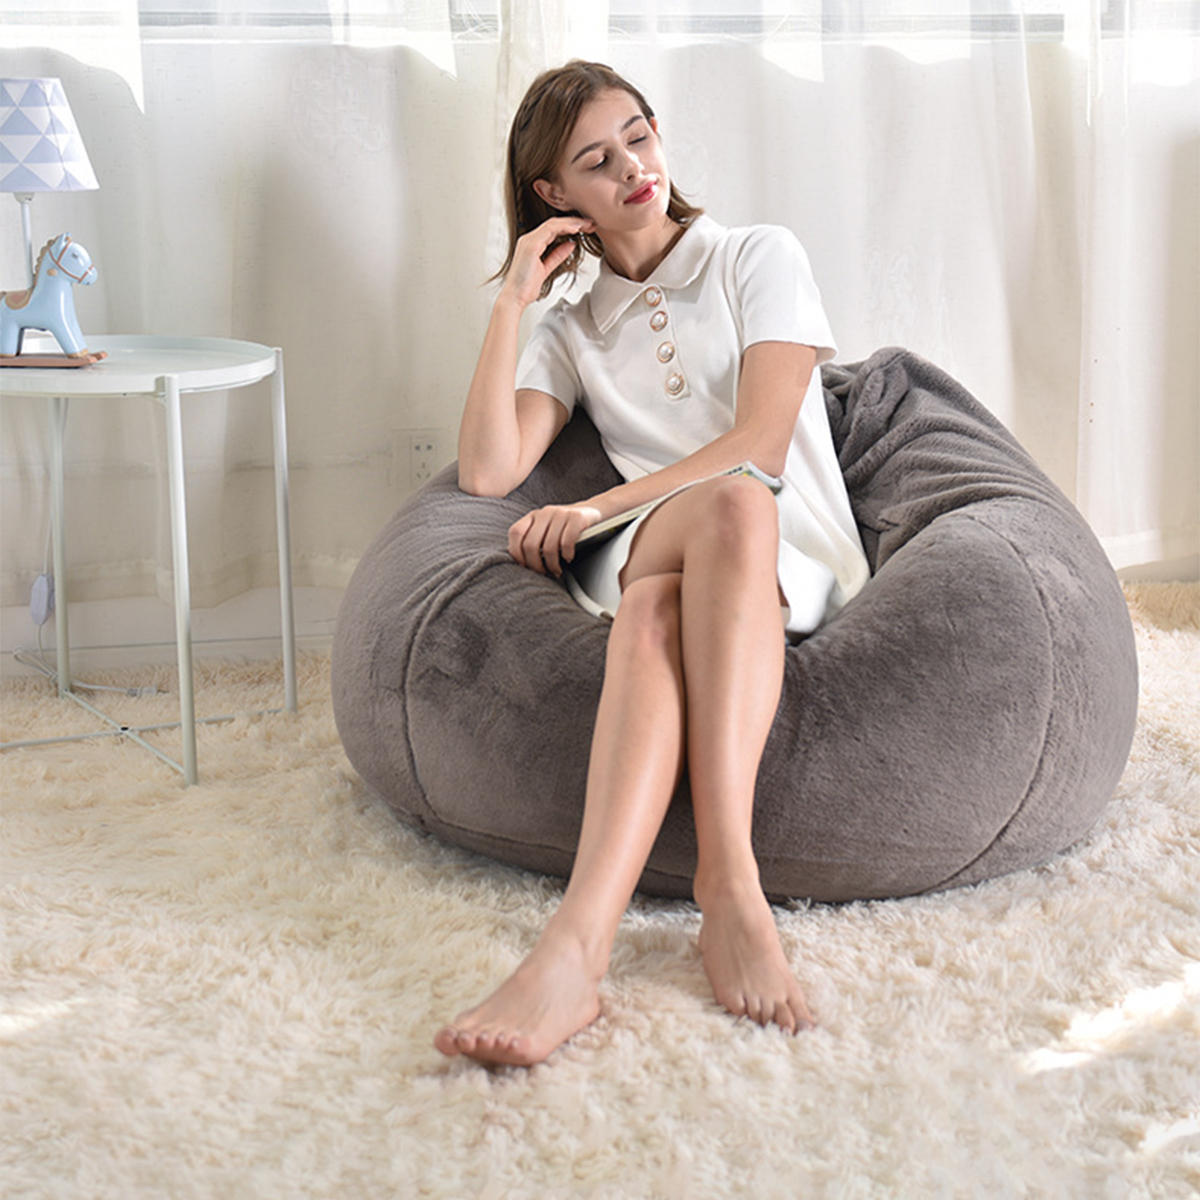 Enjoyable Nesloth Xl Large Bean Bag Chair Cover Indoor Lazy Manmade Rabbit Fur Sofa For Adult Kids 70 80 Bean Bag Cover Containing Inner Liner Cover Uwap Interior Chair Design Uwaporg